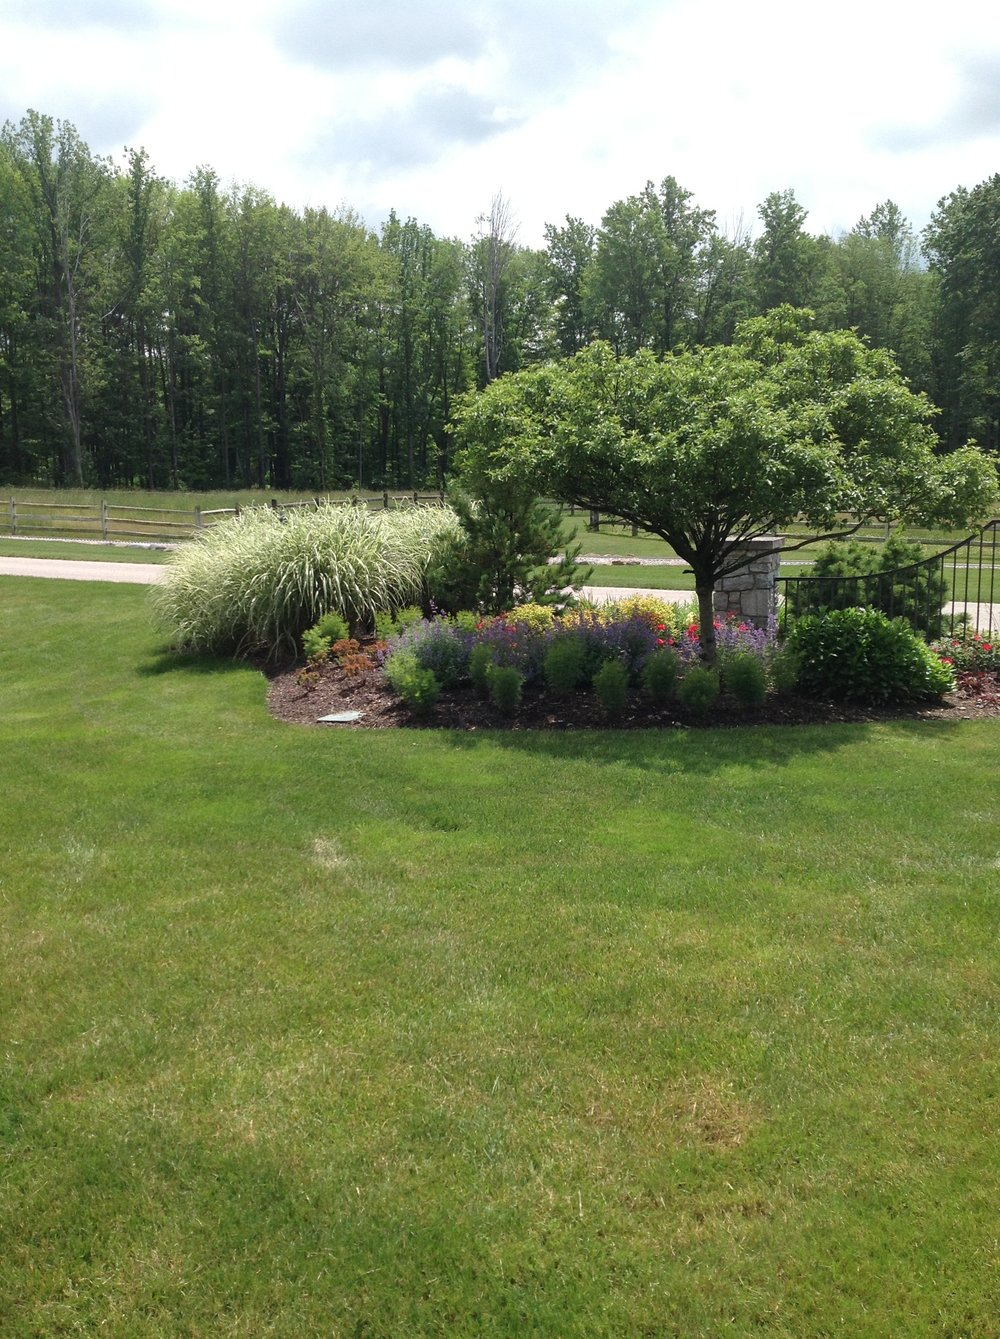 Unilock landscaping companies with top lawn fertilzer in Pepper Pike, OH